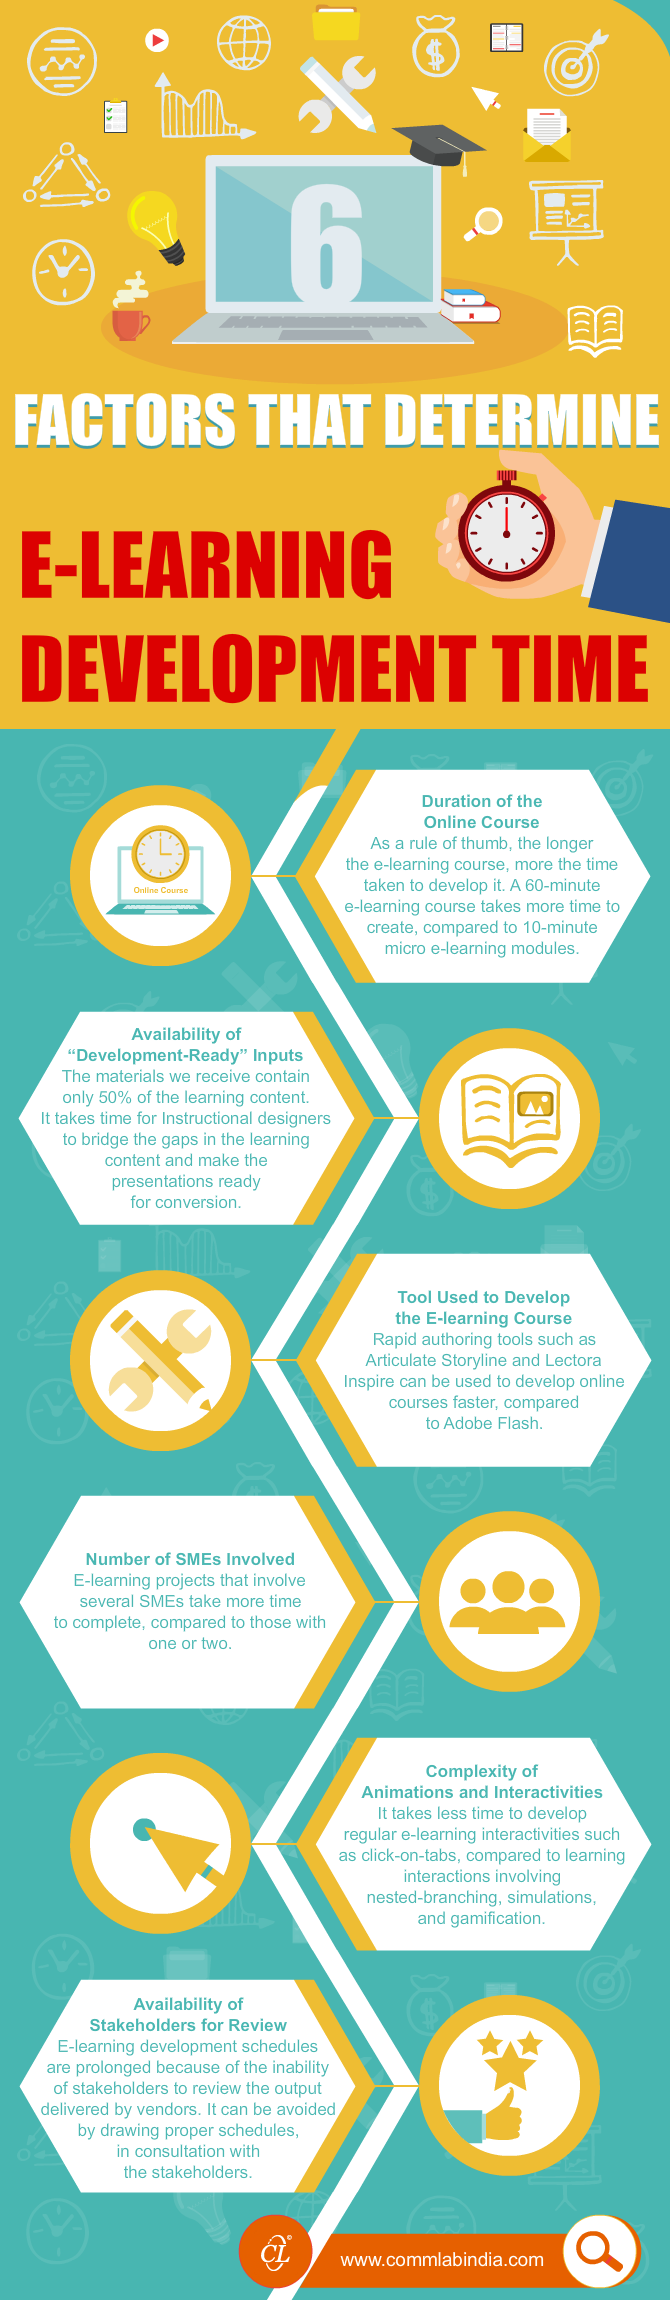 6 Factors that Determine E-learning Development Time [Infographic]